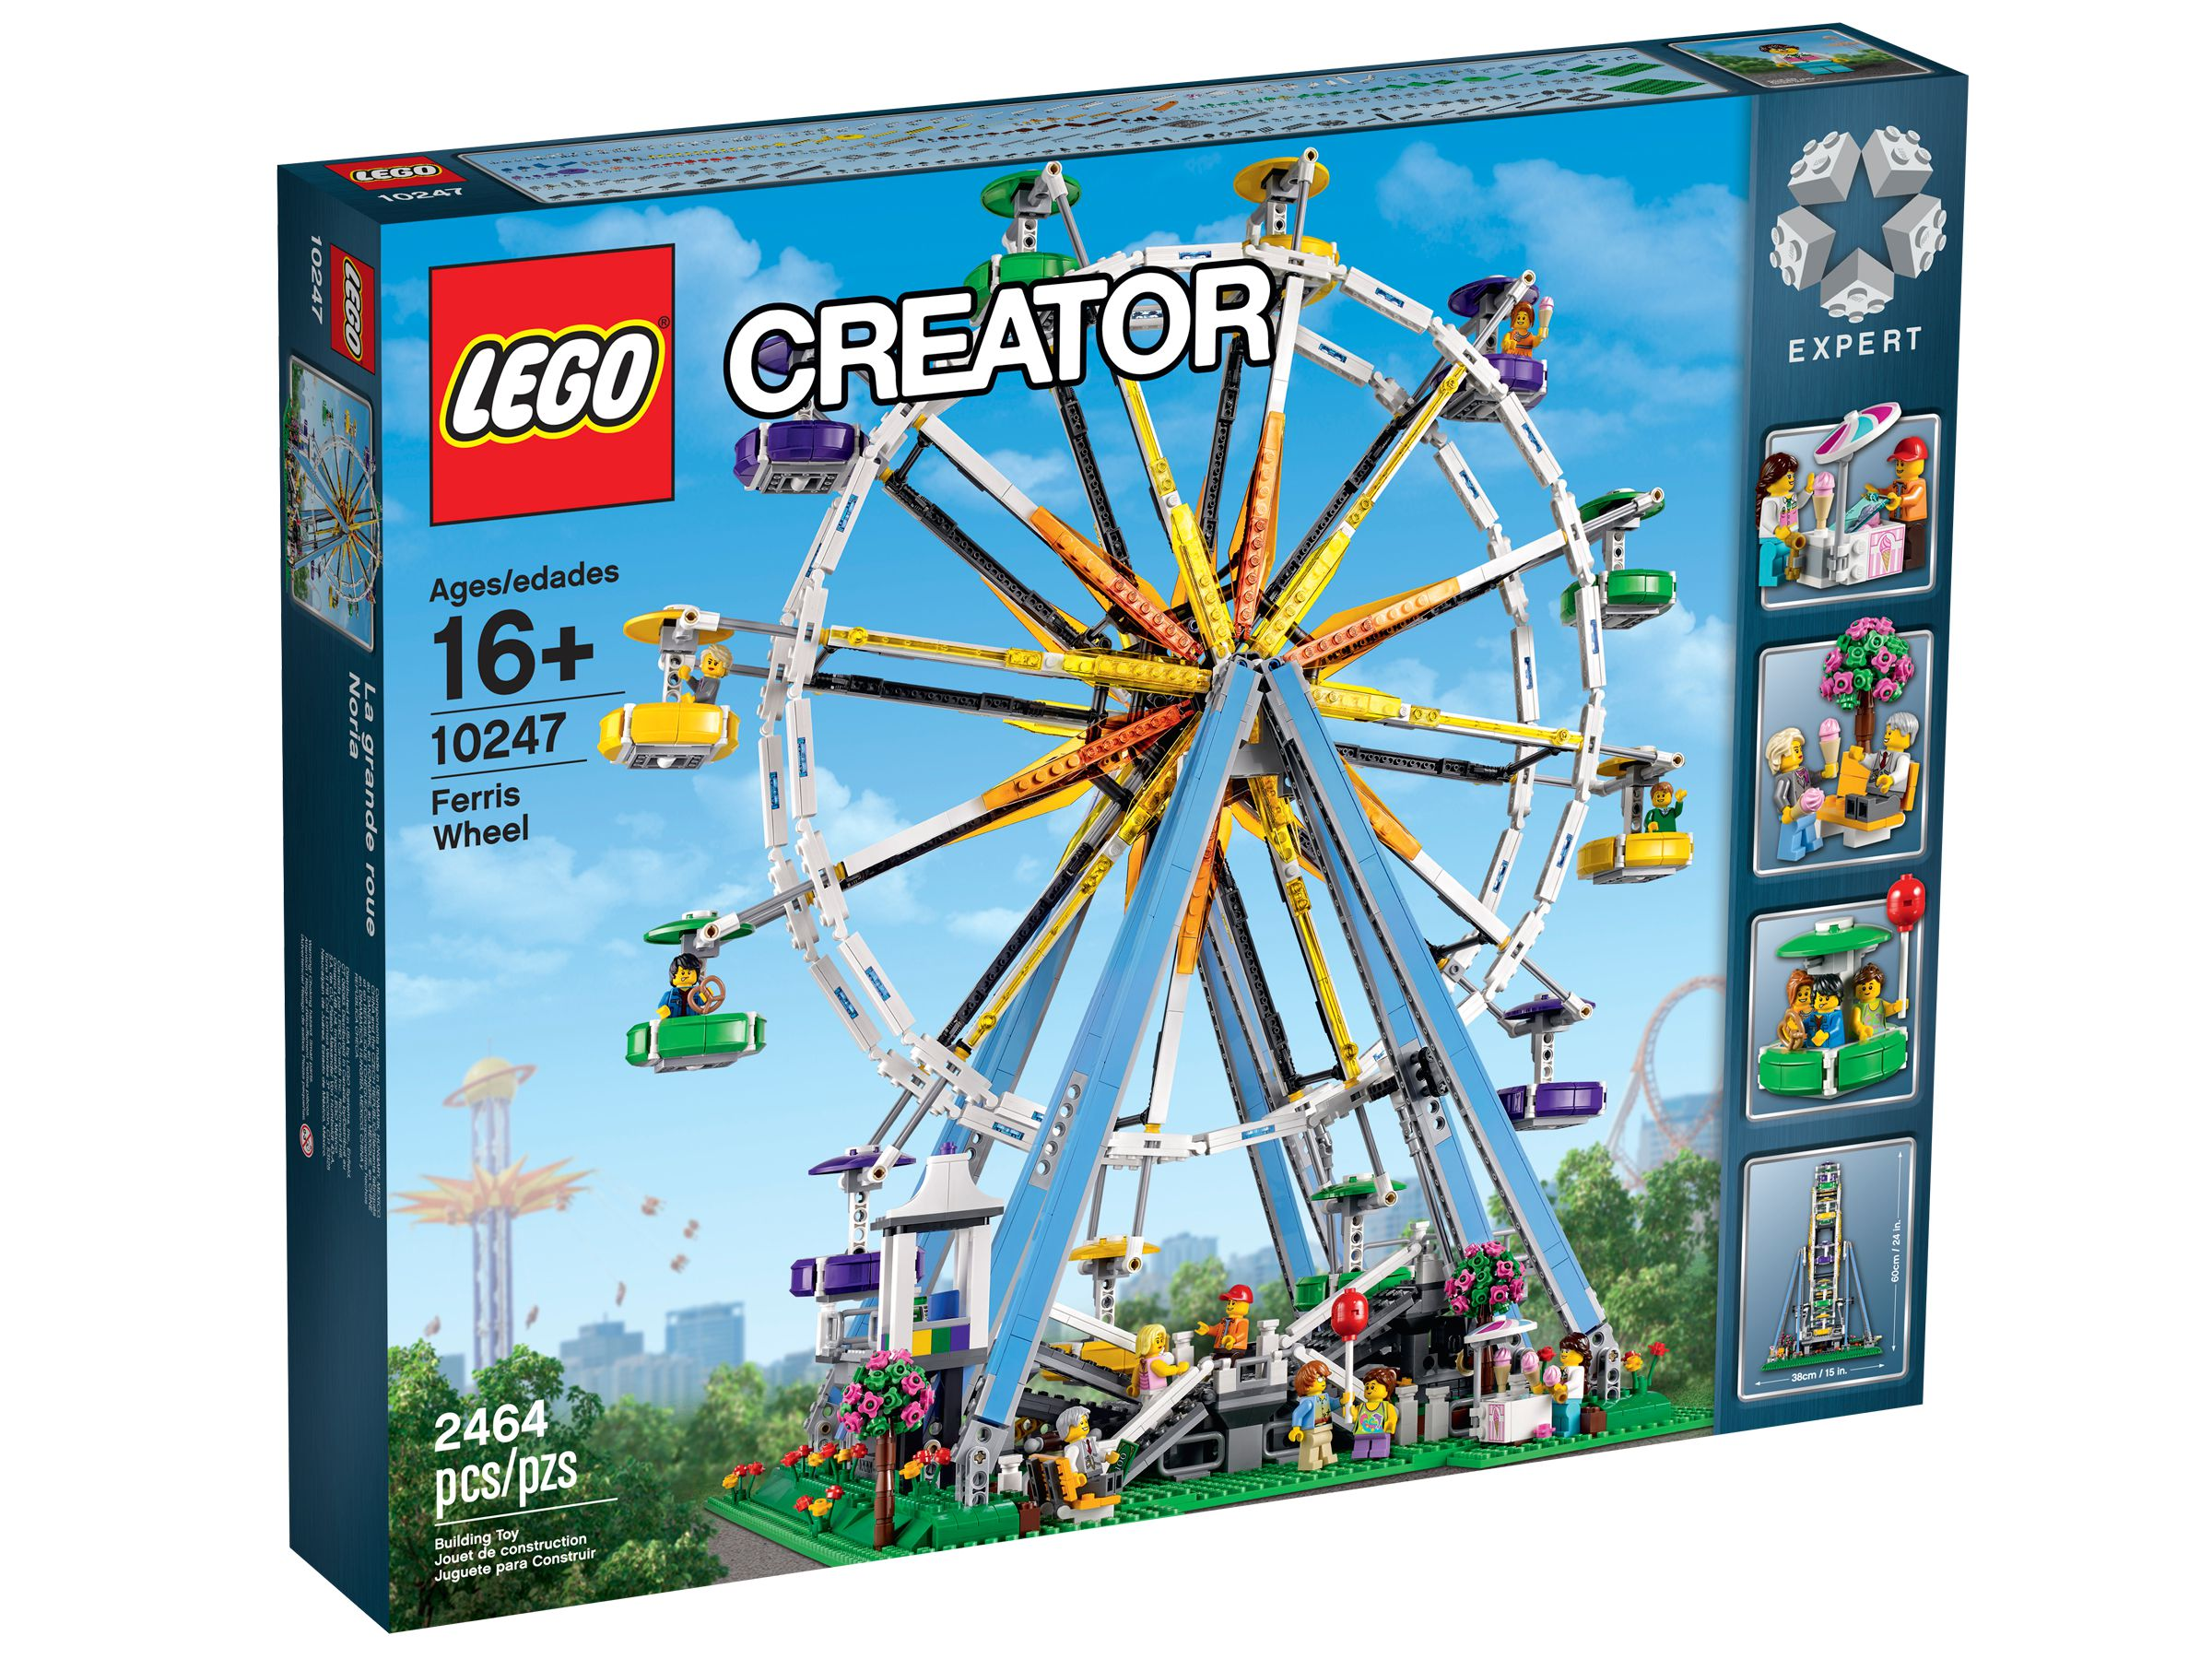 LEGO Advanced Models 10247 Riesenrad (Ferris Wheel) LEGO_10247_alt1.jpg